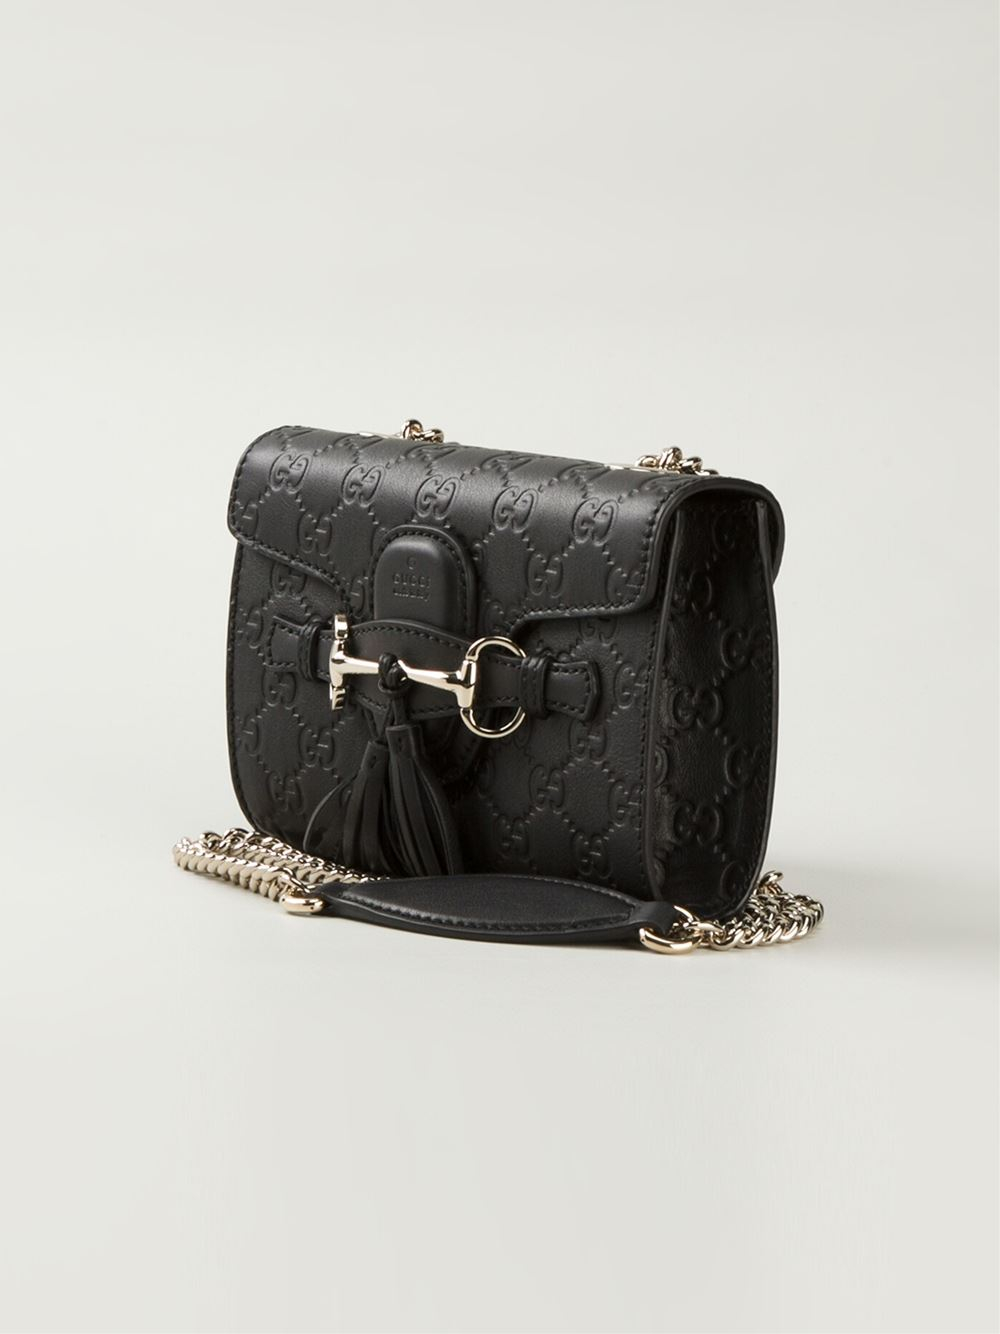 75046ad1a82 Lyst - Gucci Emily Small Calf-leather Shoulder Bag in Black